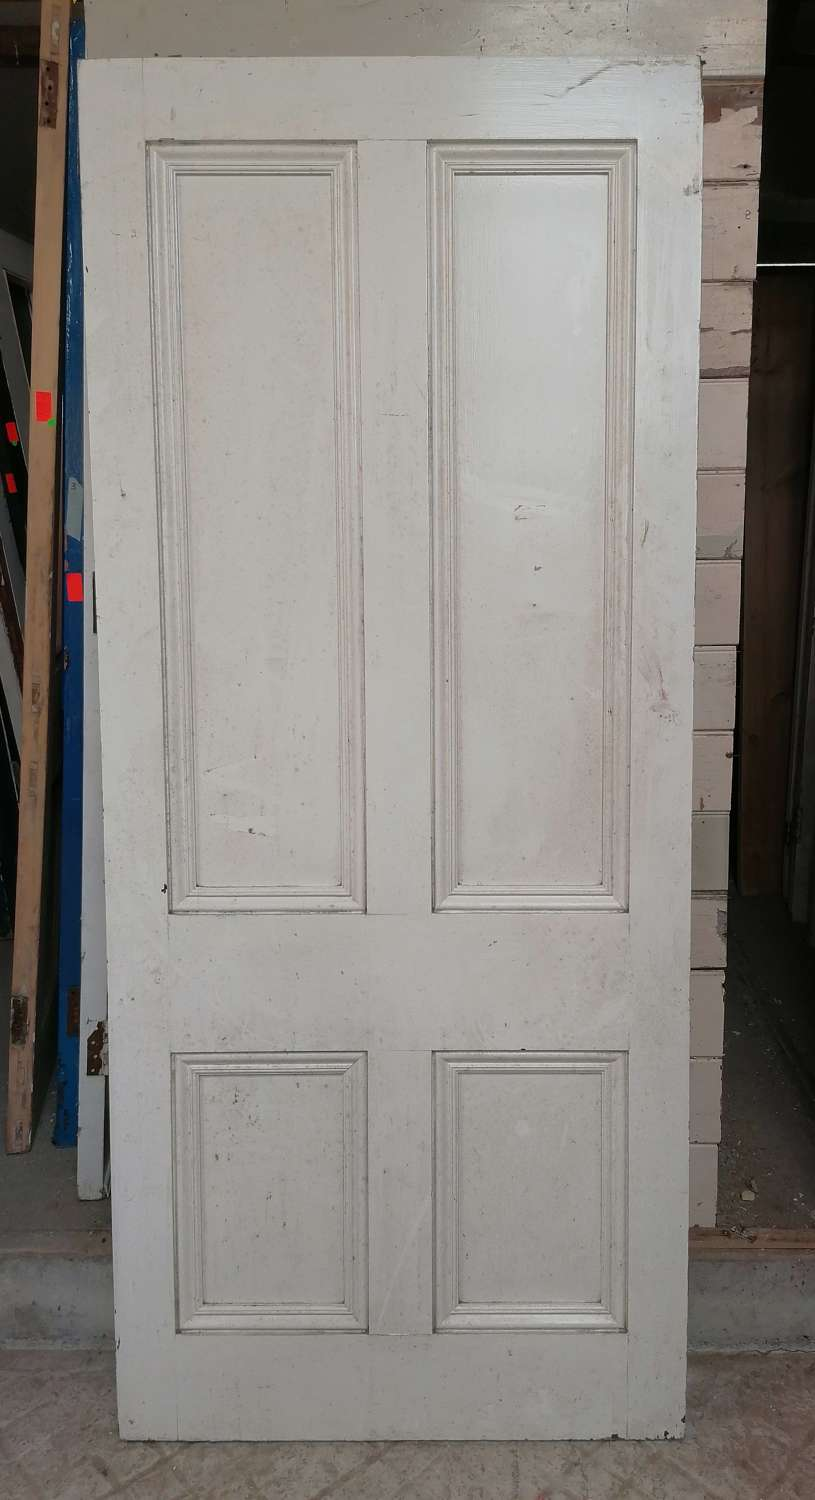 DI0741 A LARGE RECLAIMED PAINTED PINE INTERNAL FOUR PANEL DOOR